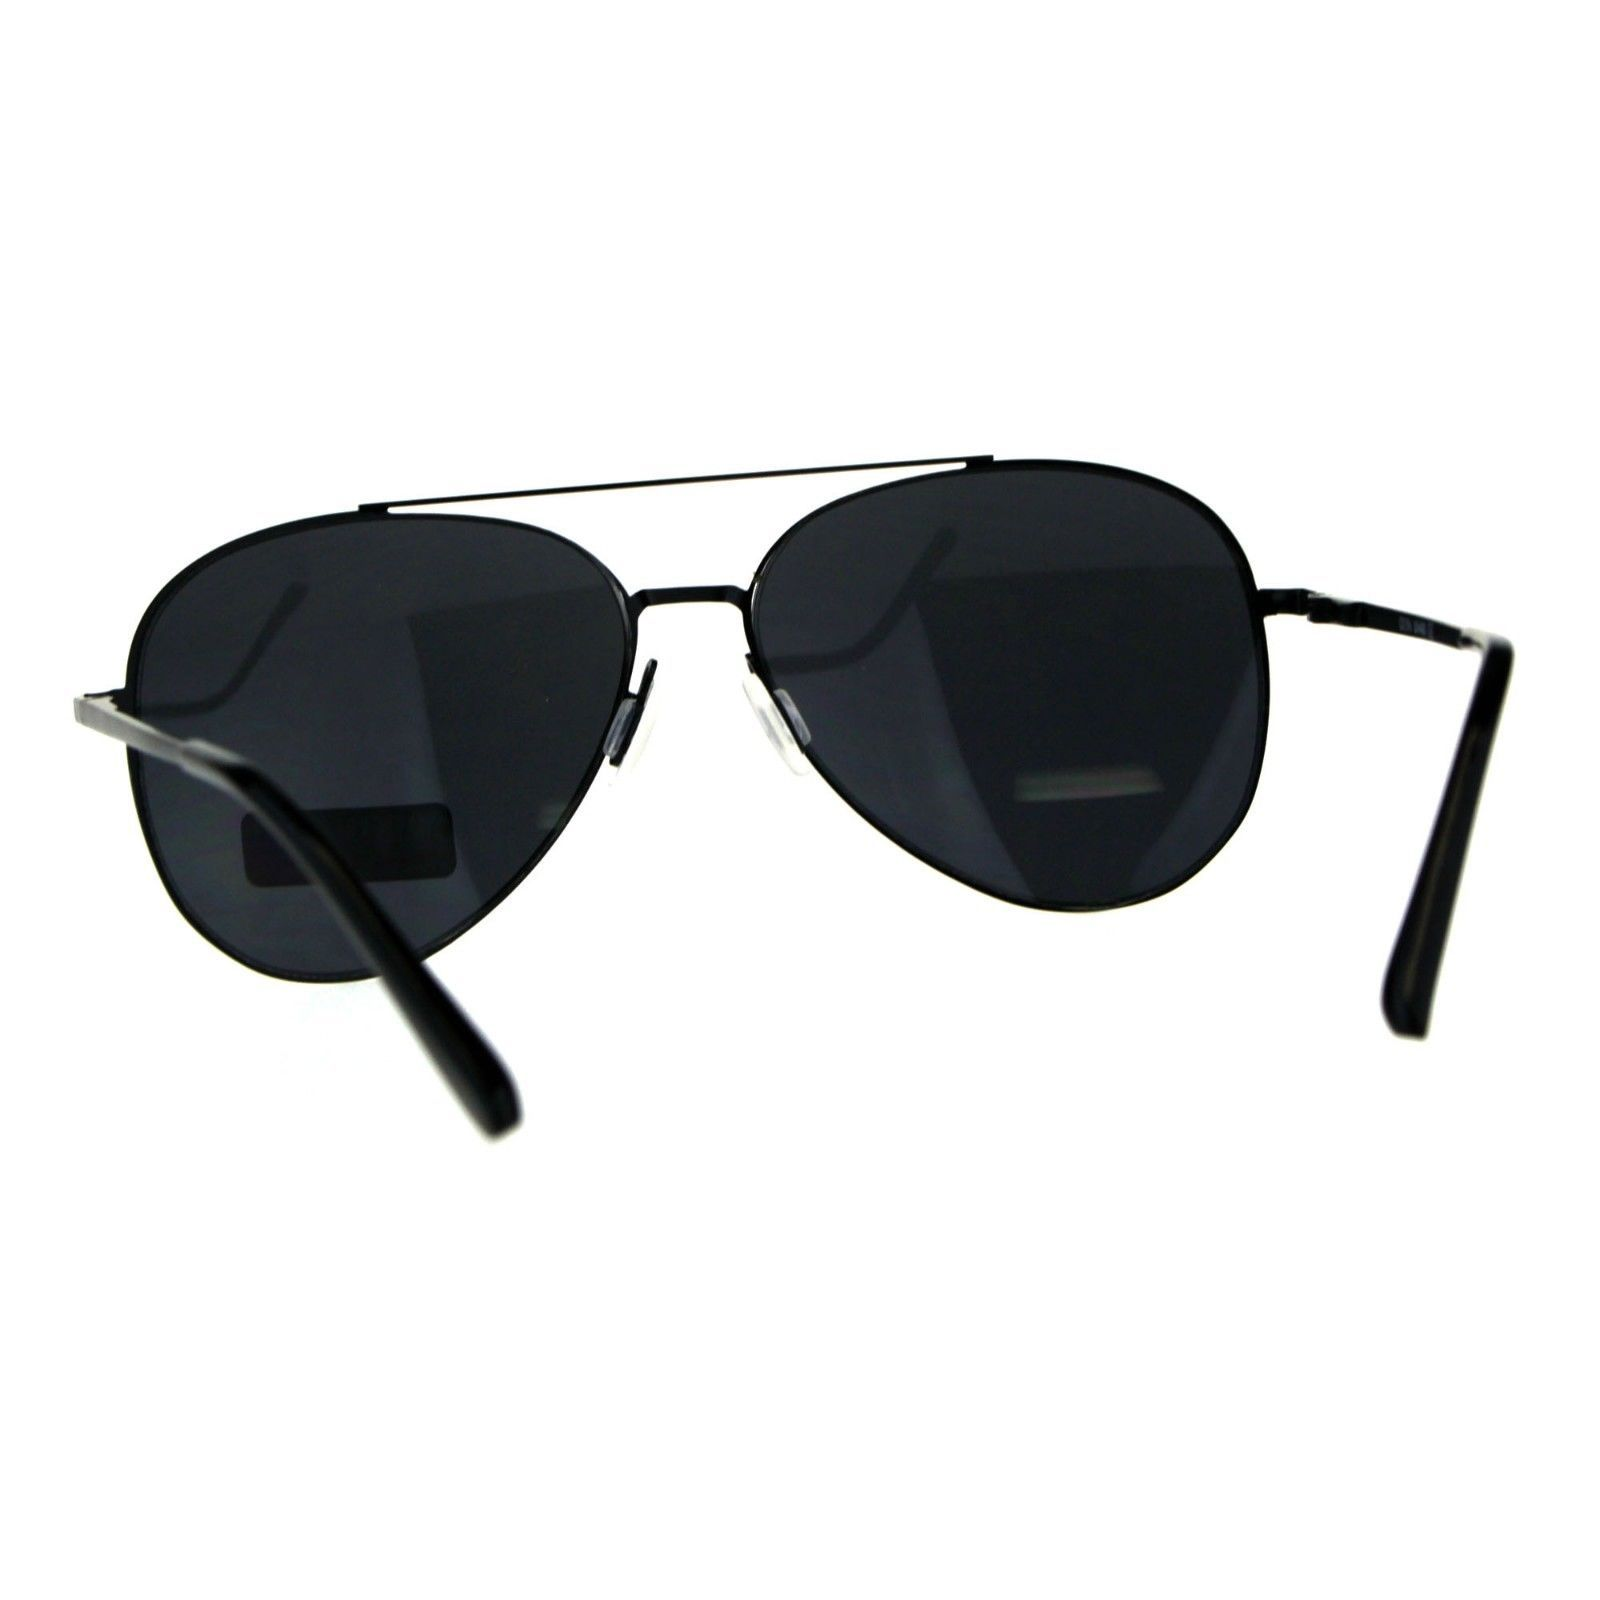 Unisex Aviator Sunglasses Thin Metal Spring Hinge Frame UV 400